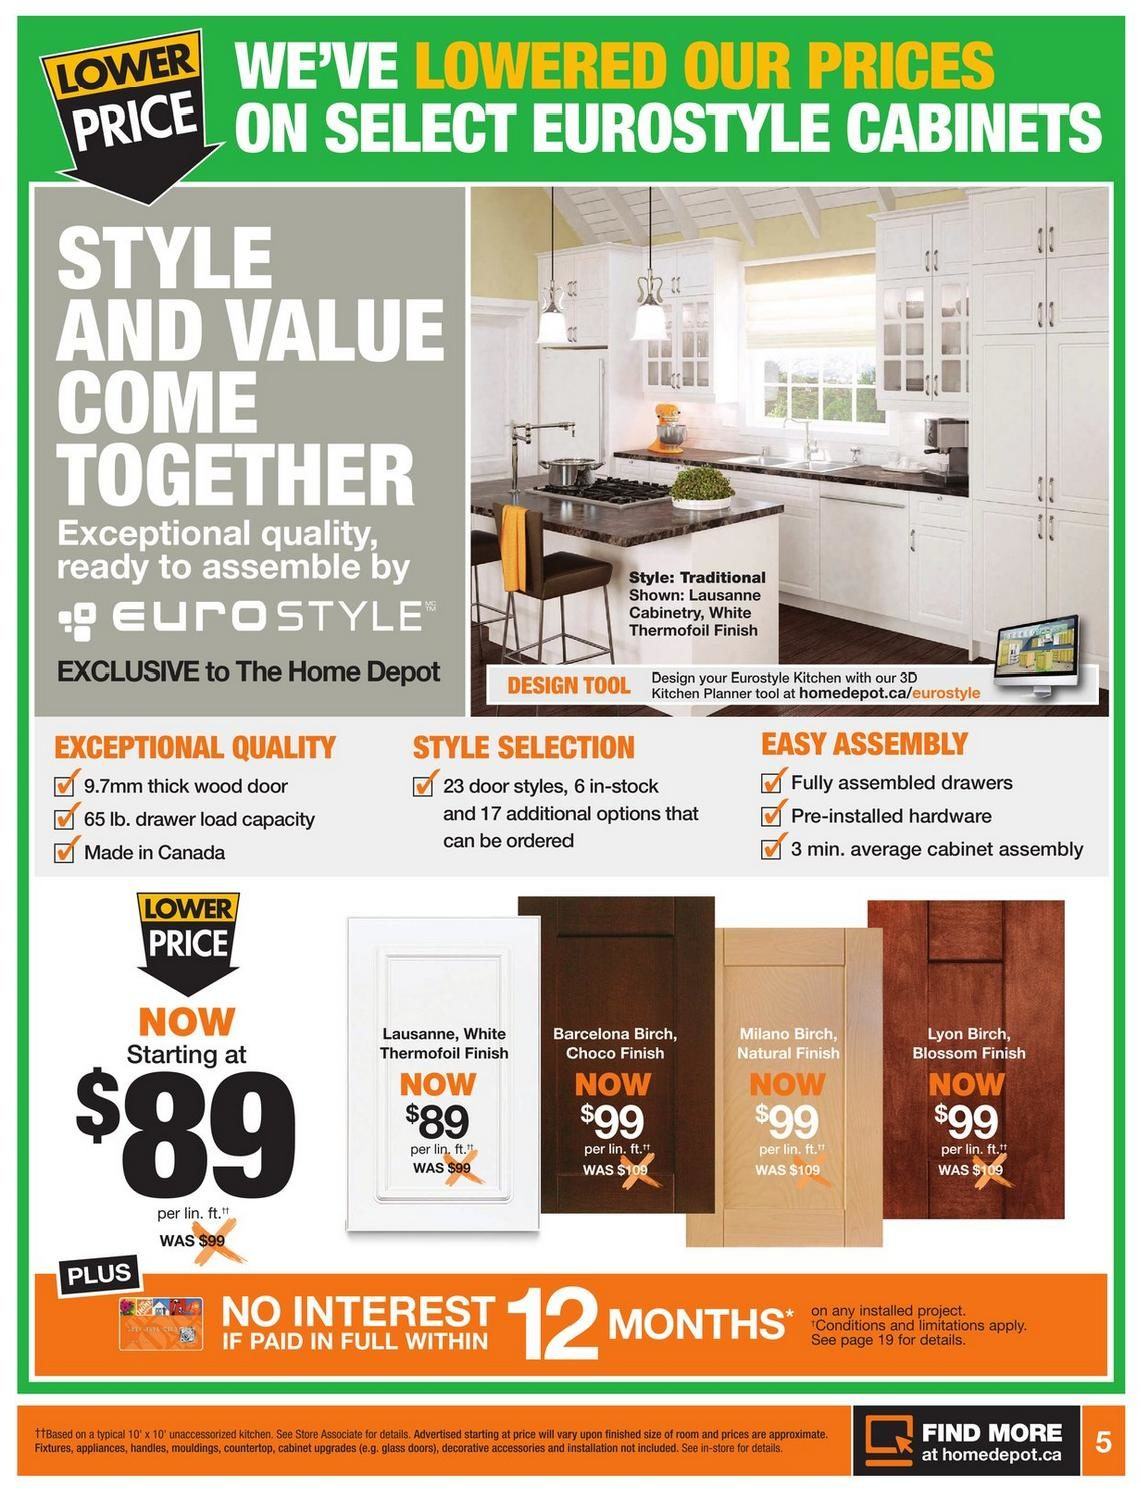 a28d705f53a4 Home Depot Weekly Flyer - Weekly Flyer - Spring Into Savings - Mar 27 – Apr  2 - RedFlagDeals.com